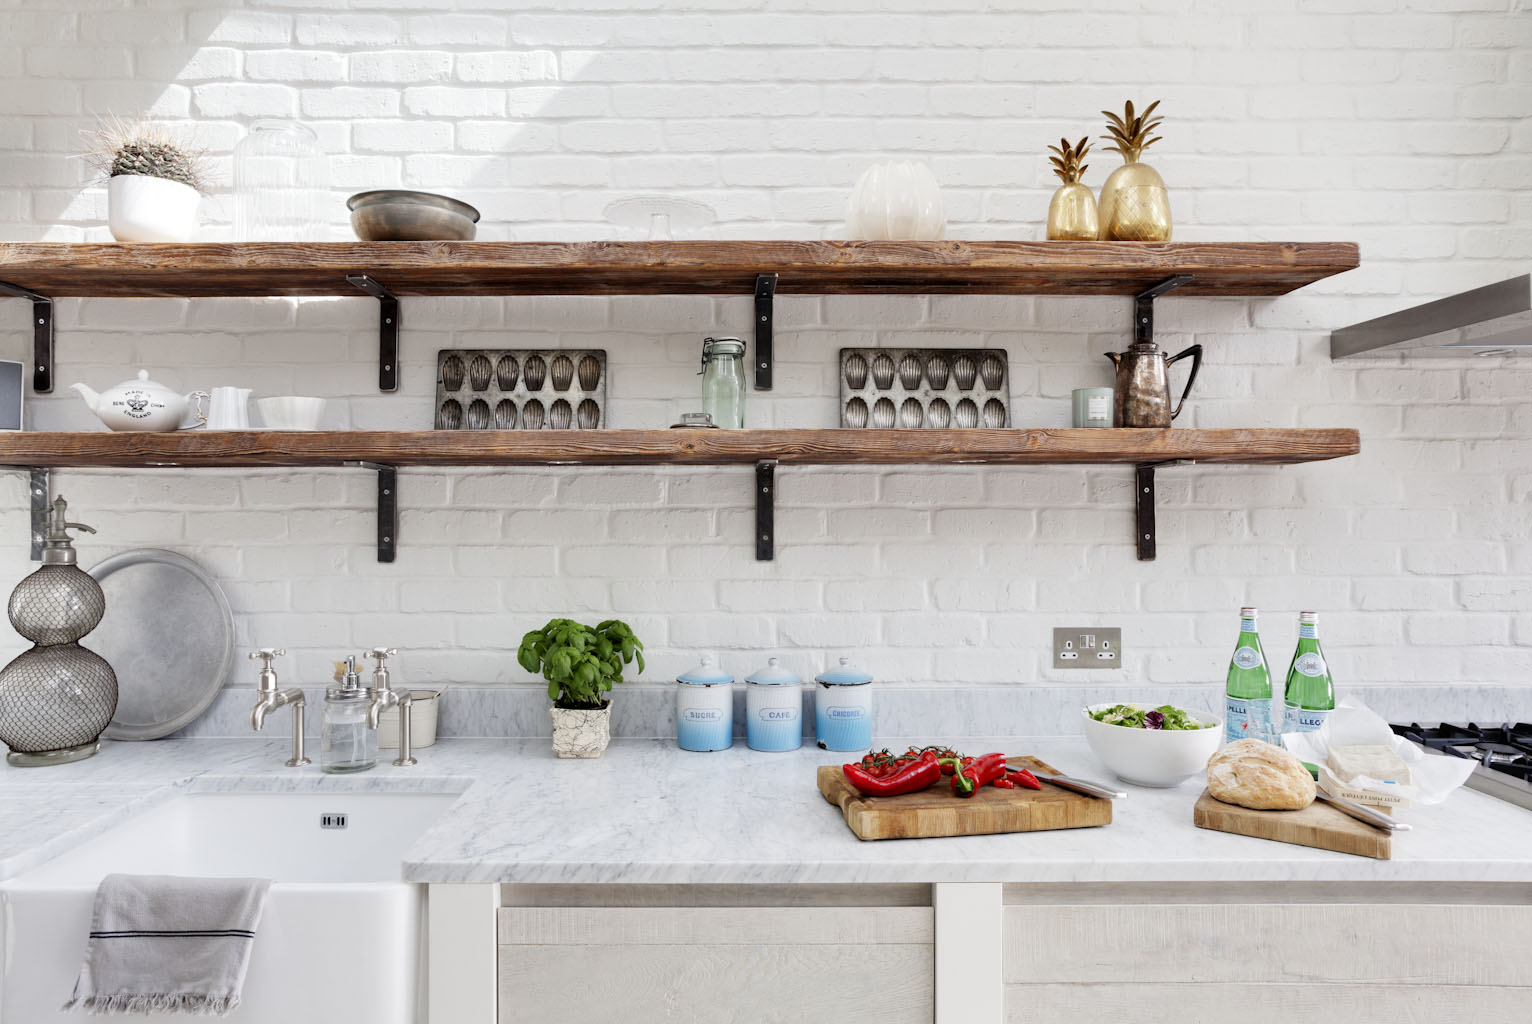 Rustic Kitchen Cabinets - Shelved kitchen